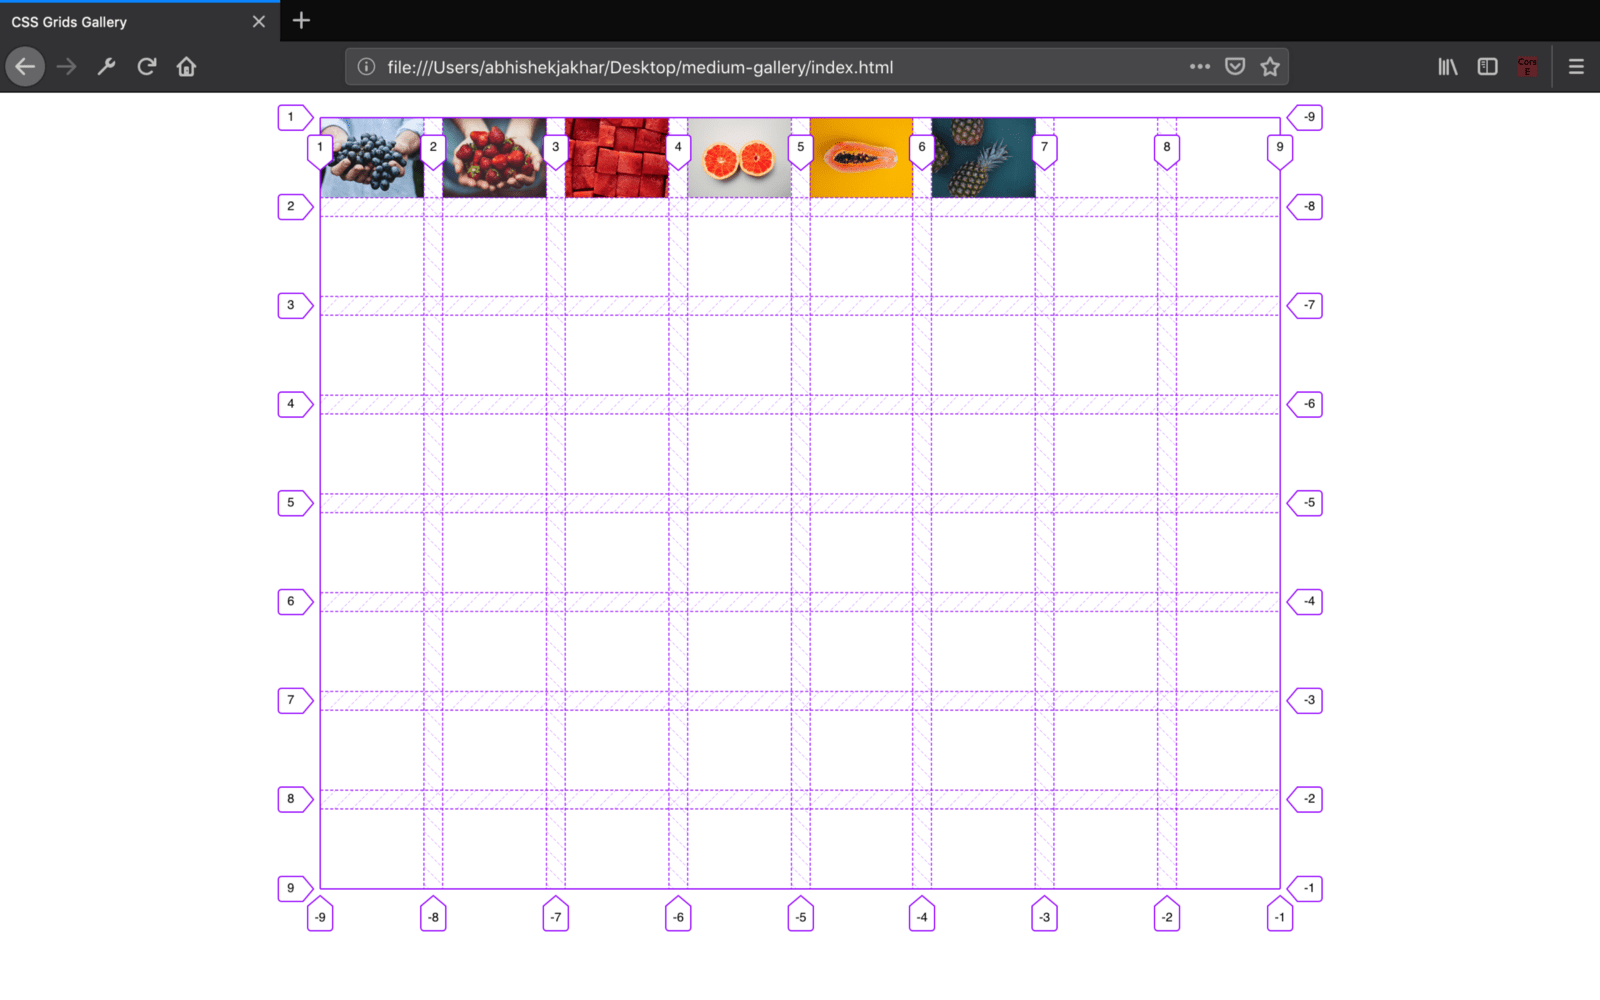 note by default the grid items are laid out according to the grid auto placement rules